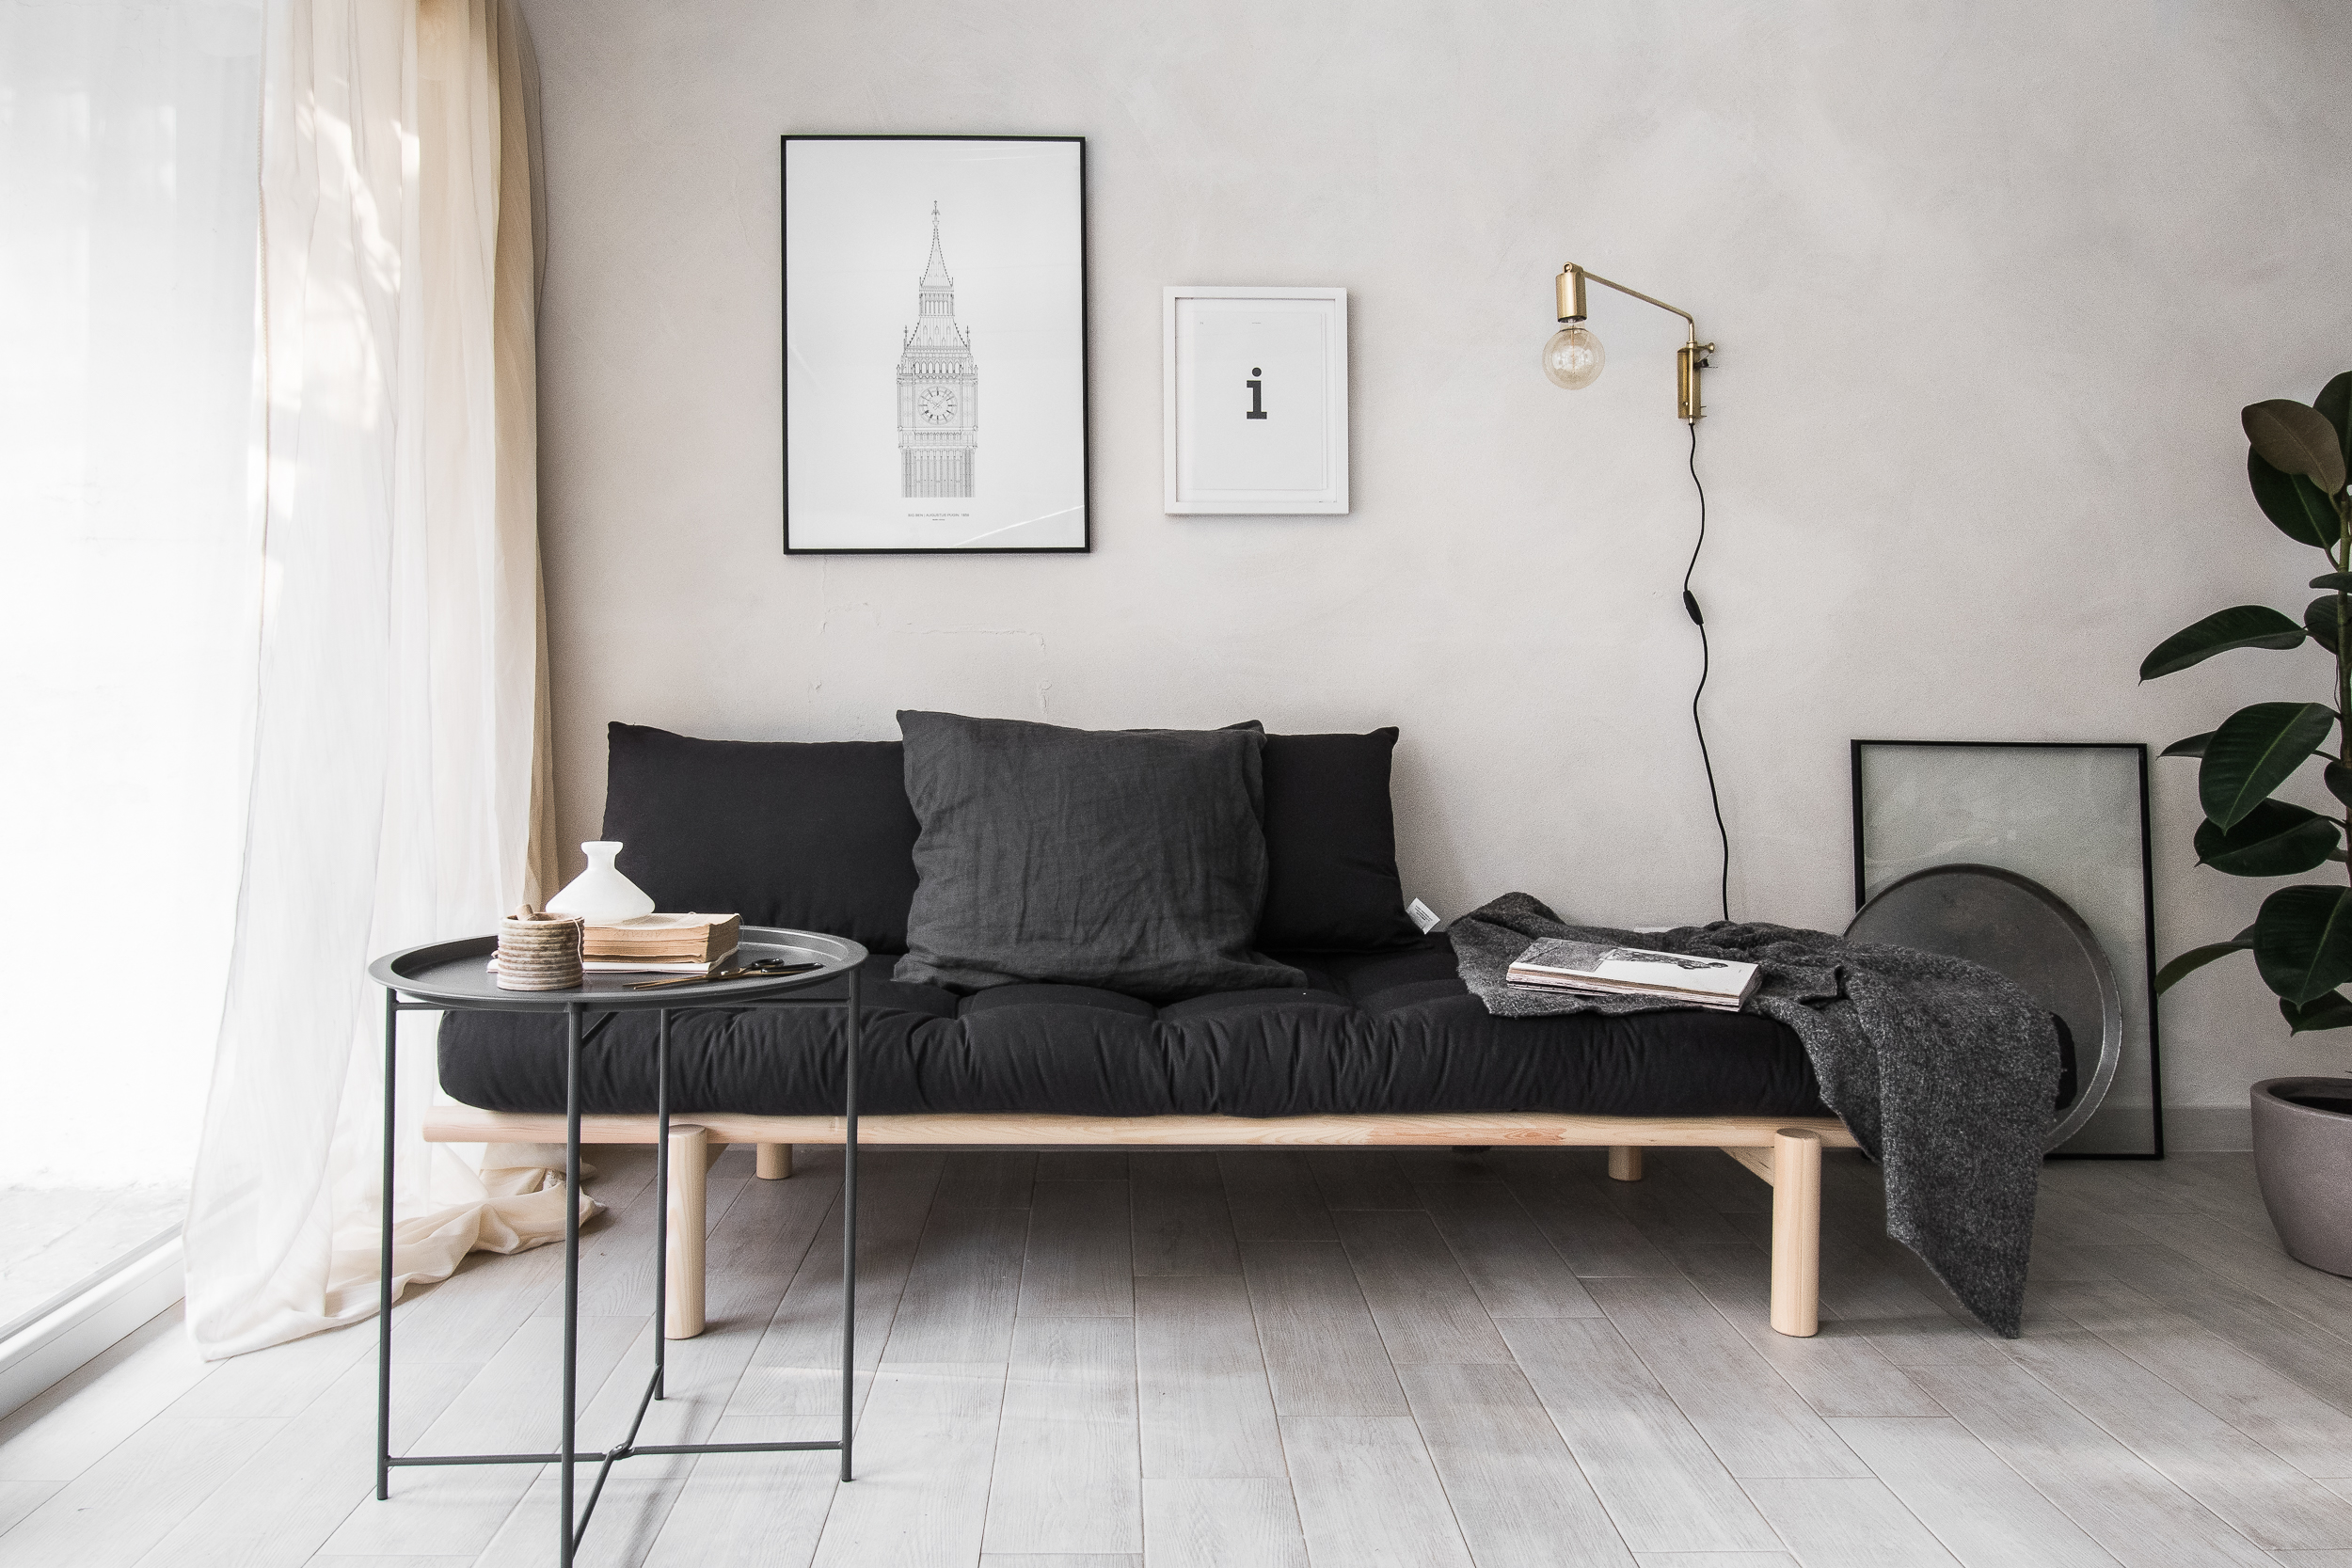 New Studio S Look With The Stylish Daybed From Karup